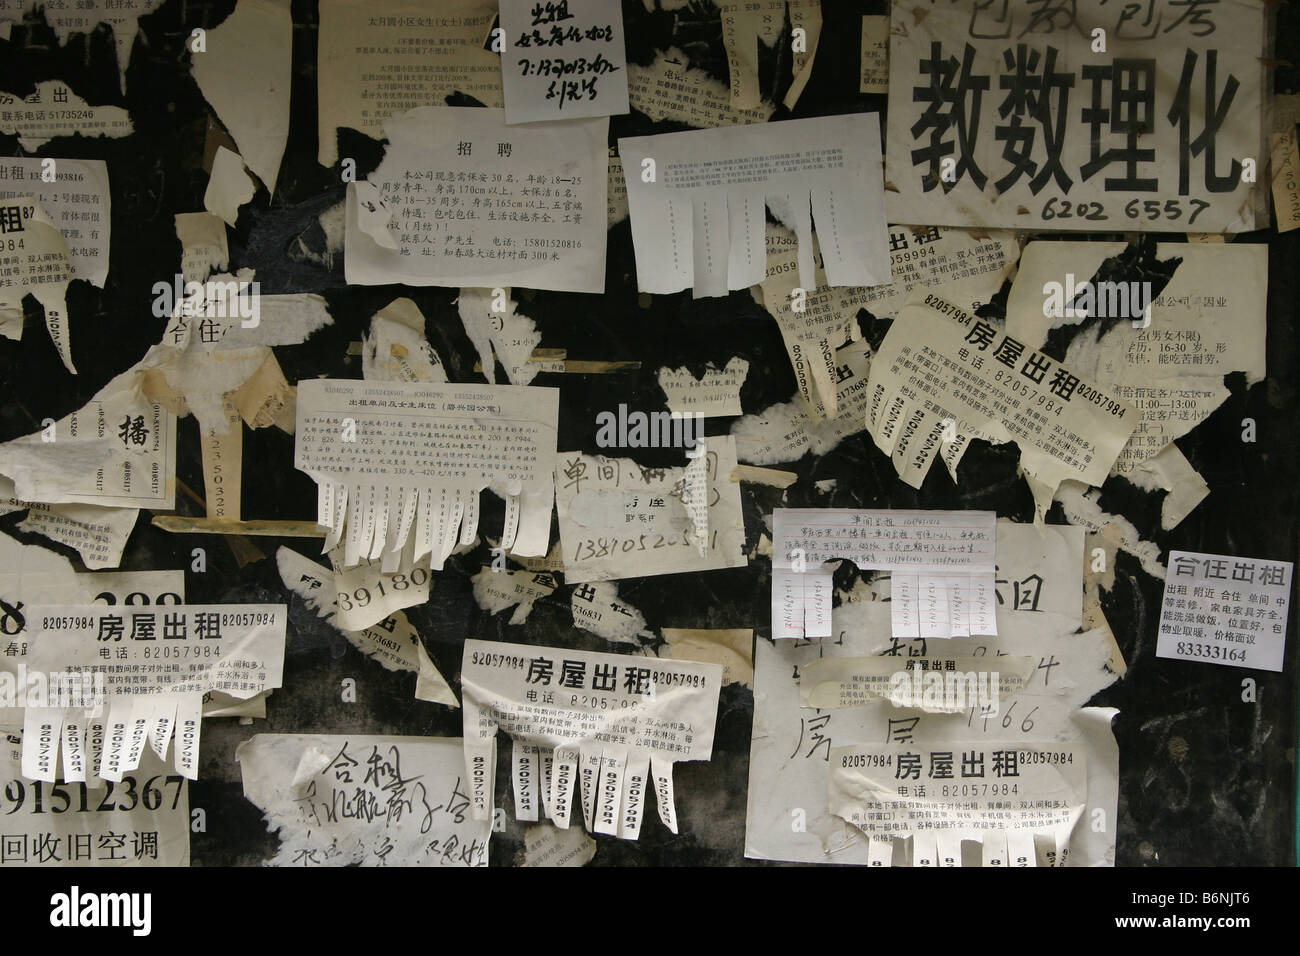 beijing noticeboard showing advertsiements for rooms and flats to rent in the capital, - Stock Image